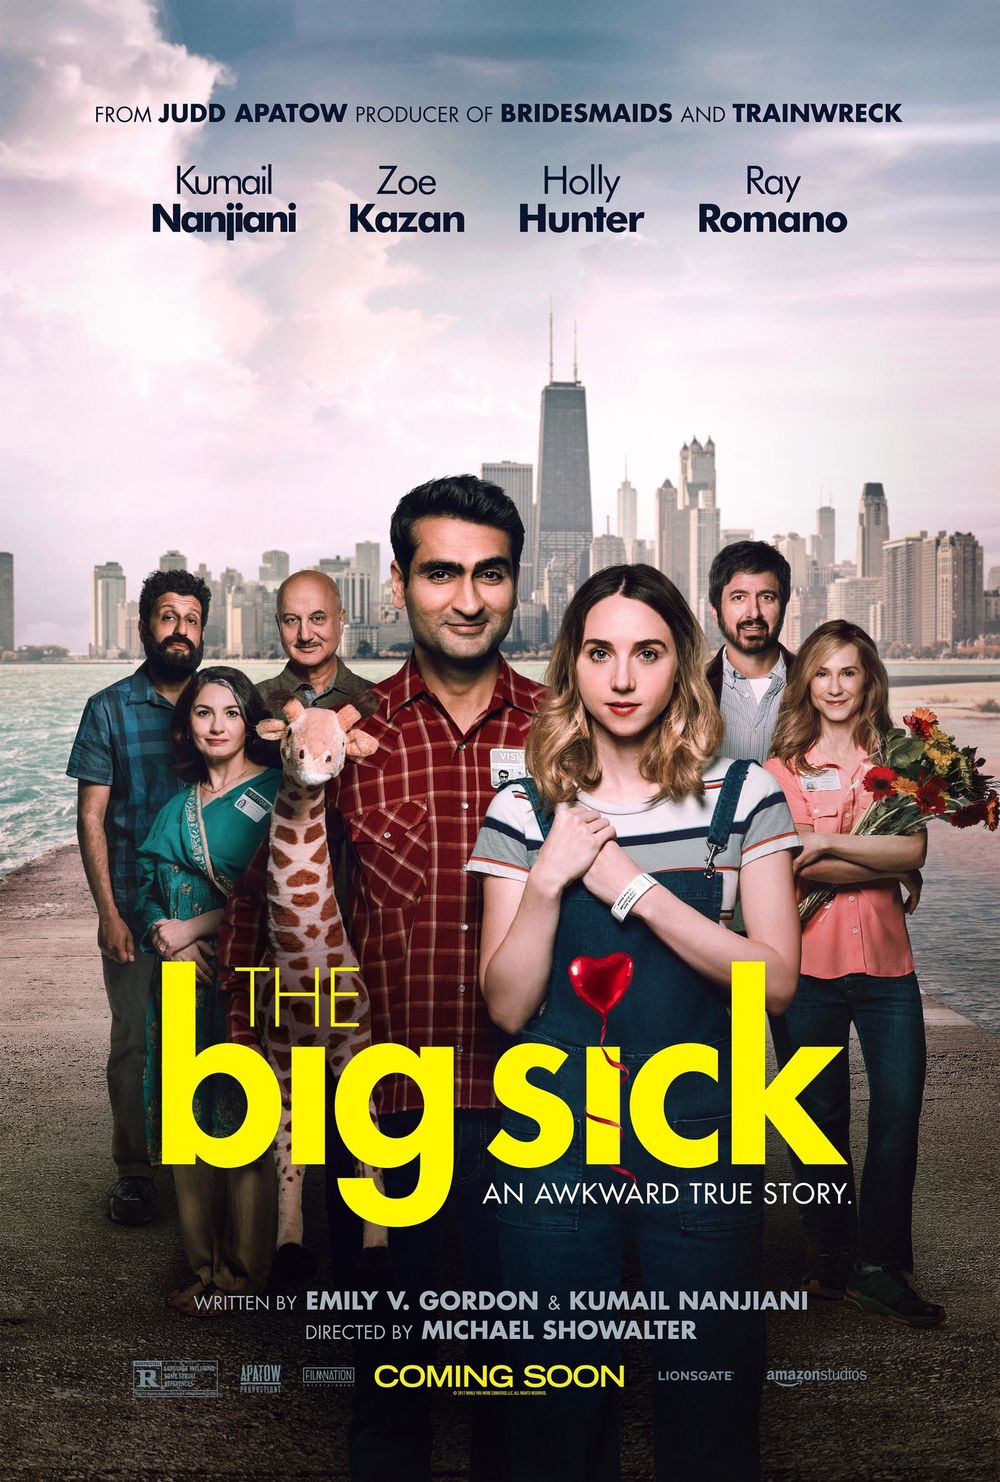 The Big Sick Movie Review